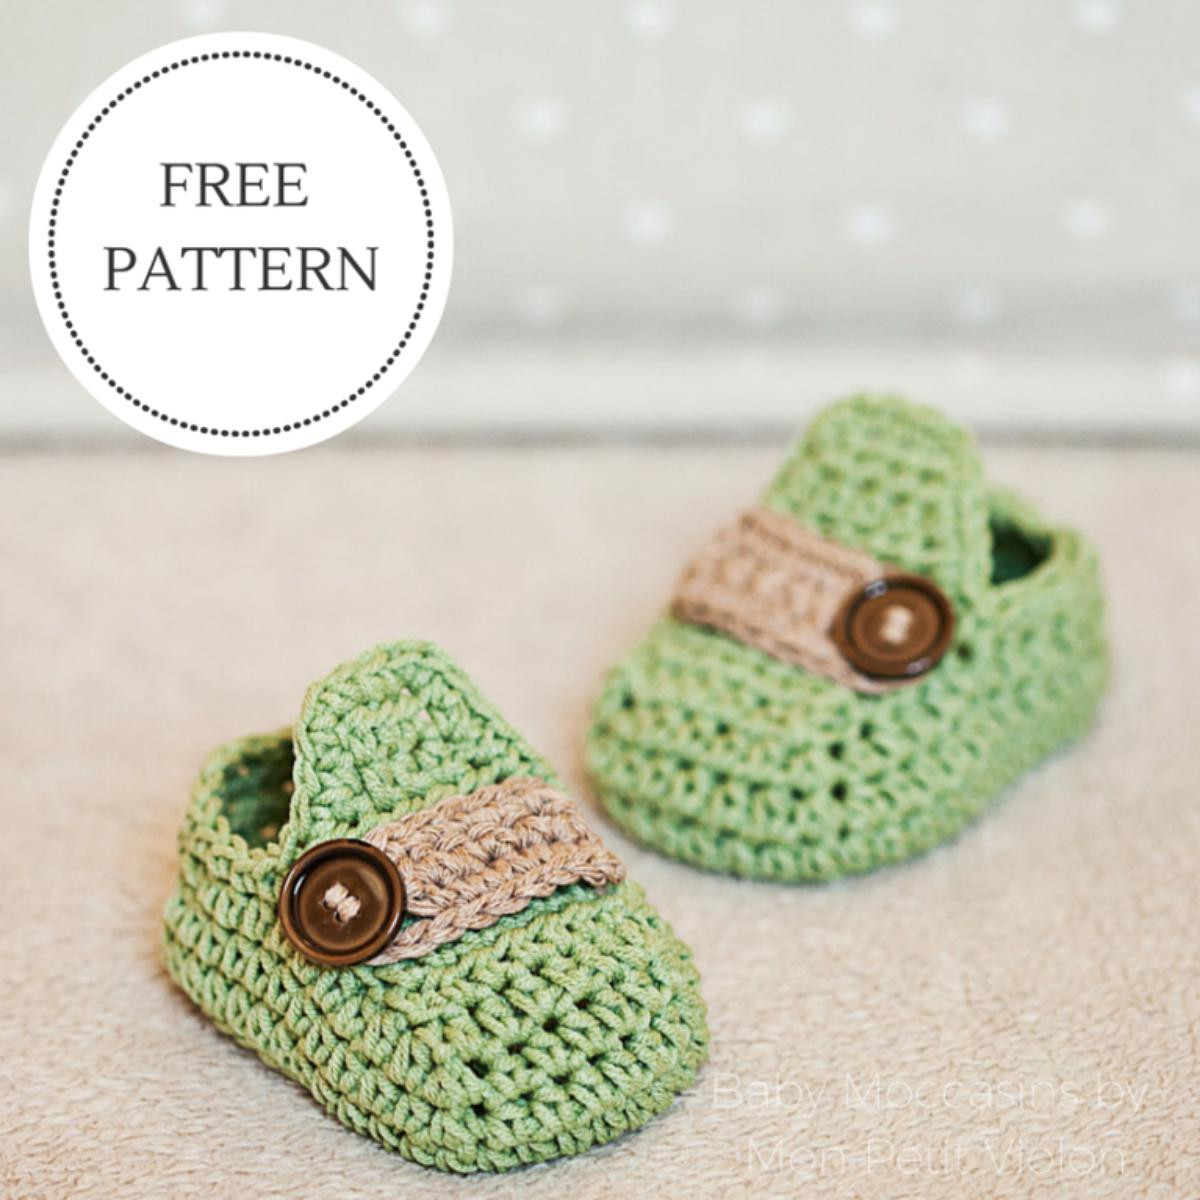 Free Crochet Baby Booties Elegant Crochet Baby Booties Patterns for Sweet Little Feet Of Wonderful 49 Photos Free Crochet Baby Booties